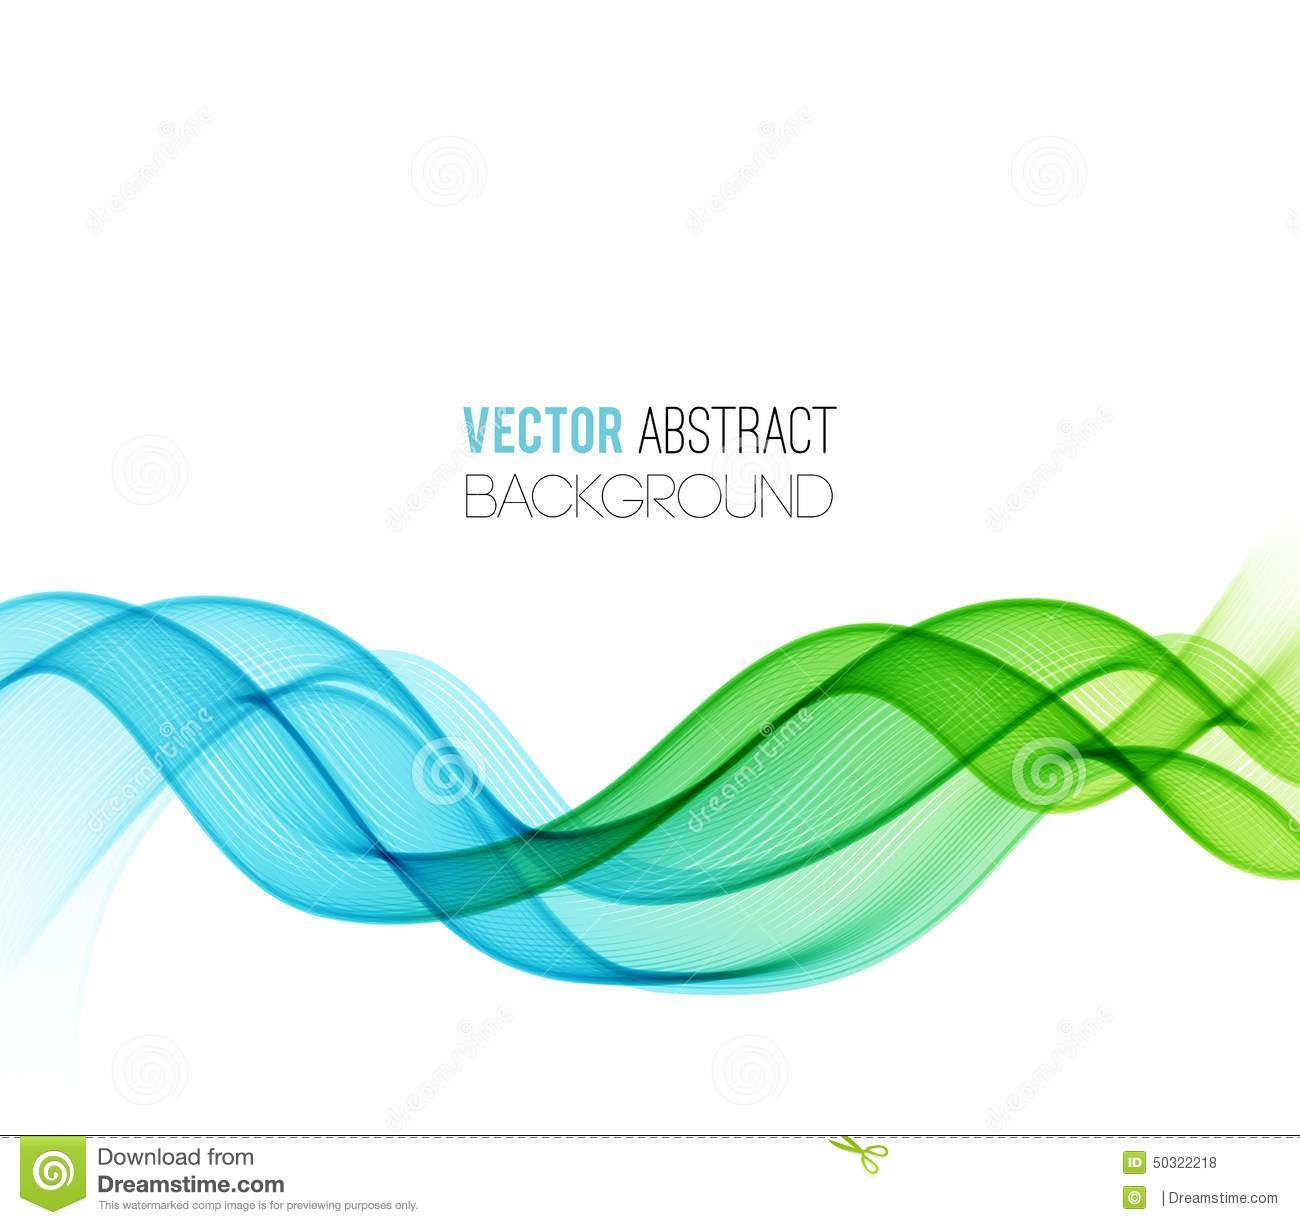 Curved Line Design : Abstract curved lines background template design stock